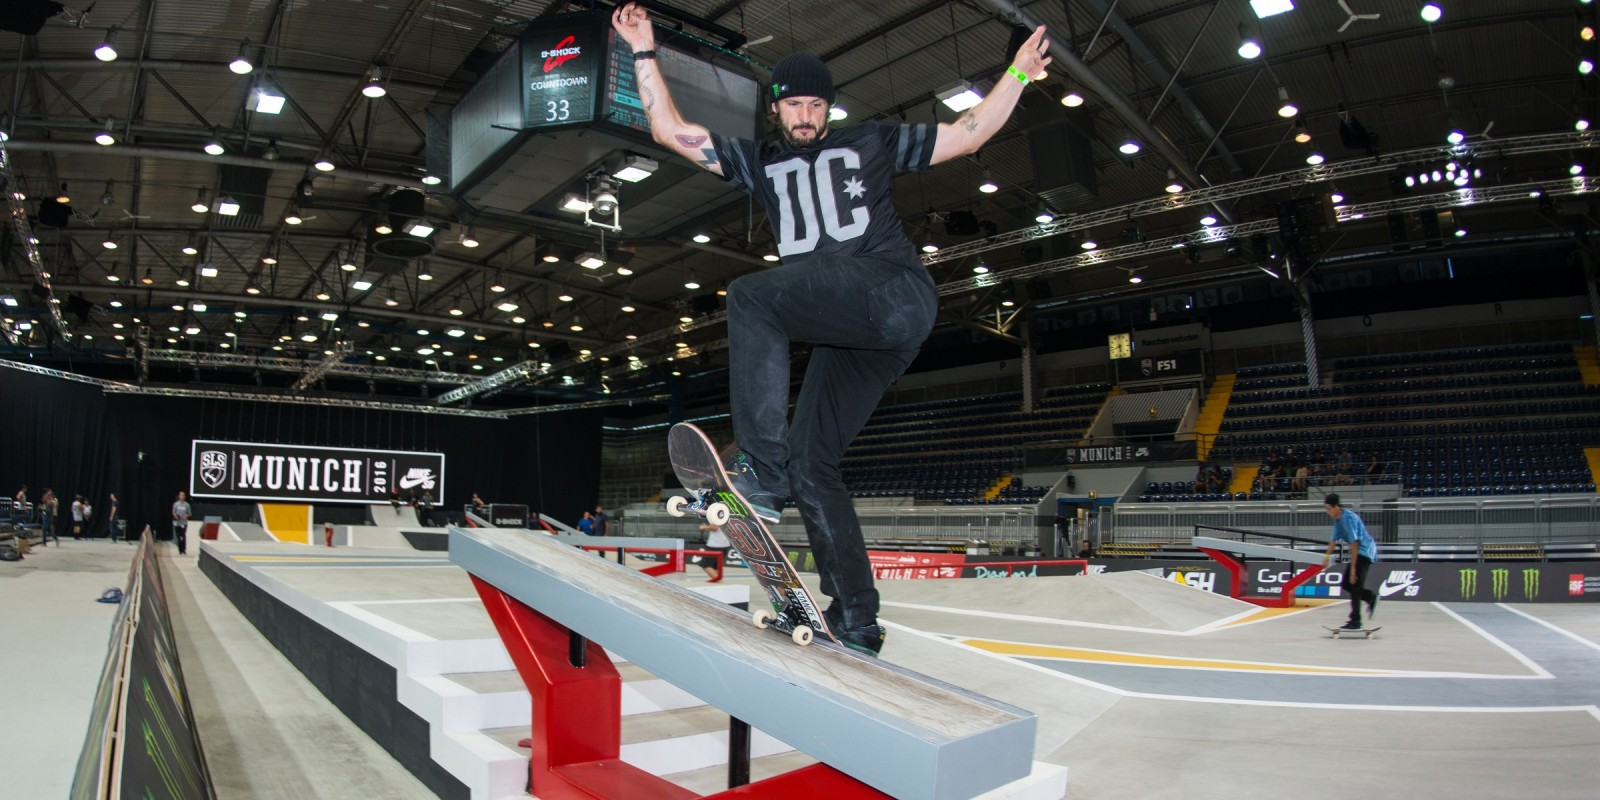 Chris Cole during practice for the SLS 2016 season in Munich, Germany